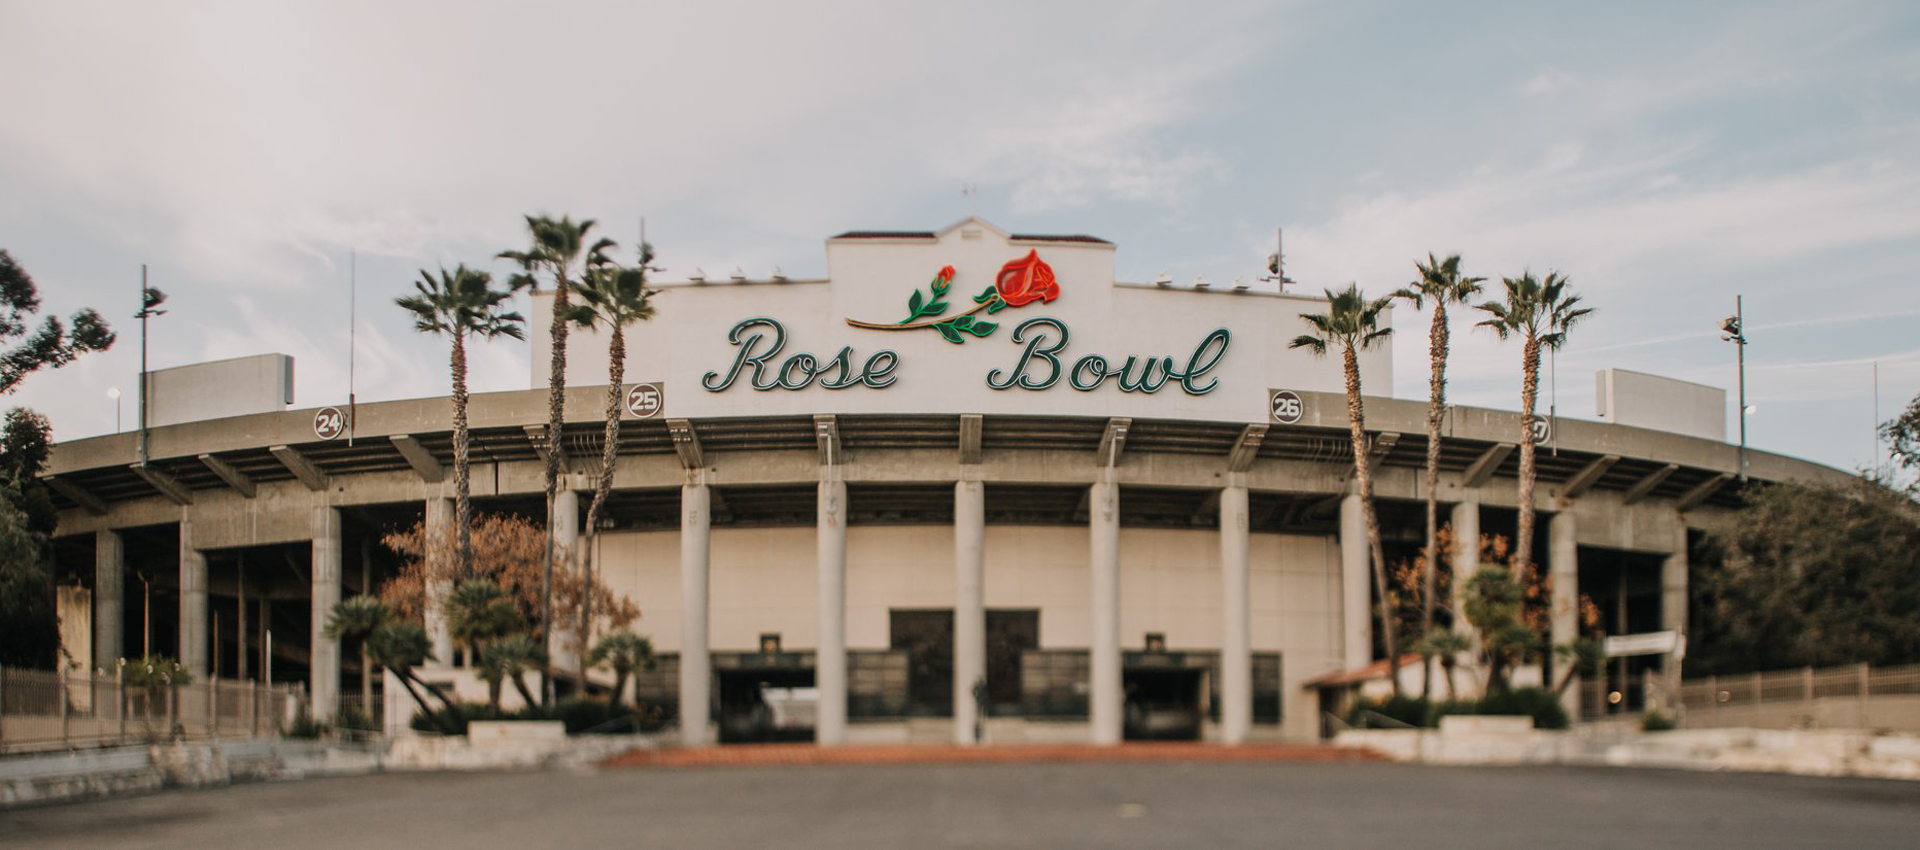 rose_bowl_slide1